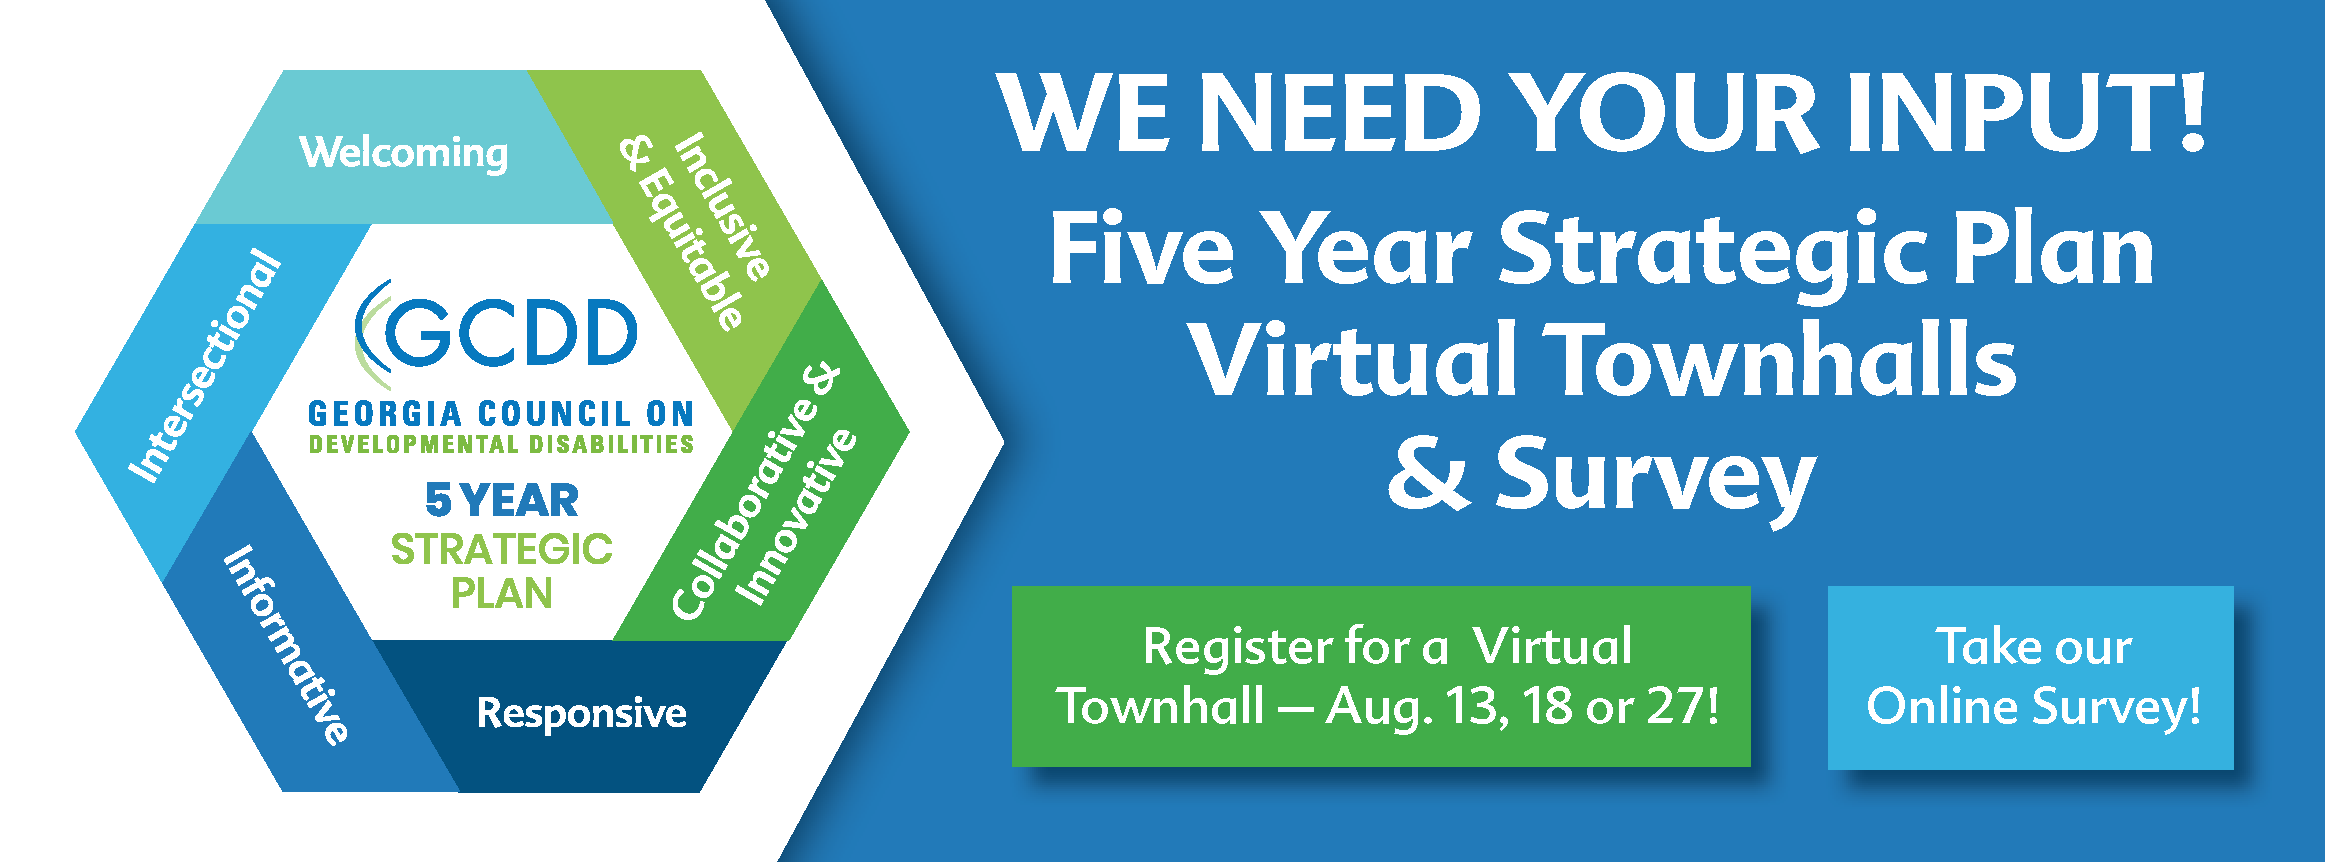 We Need Your Input! Five Year Strategic Plan Virtual Townhalls & Survey